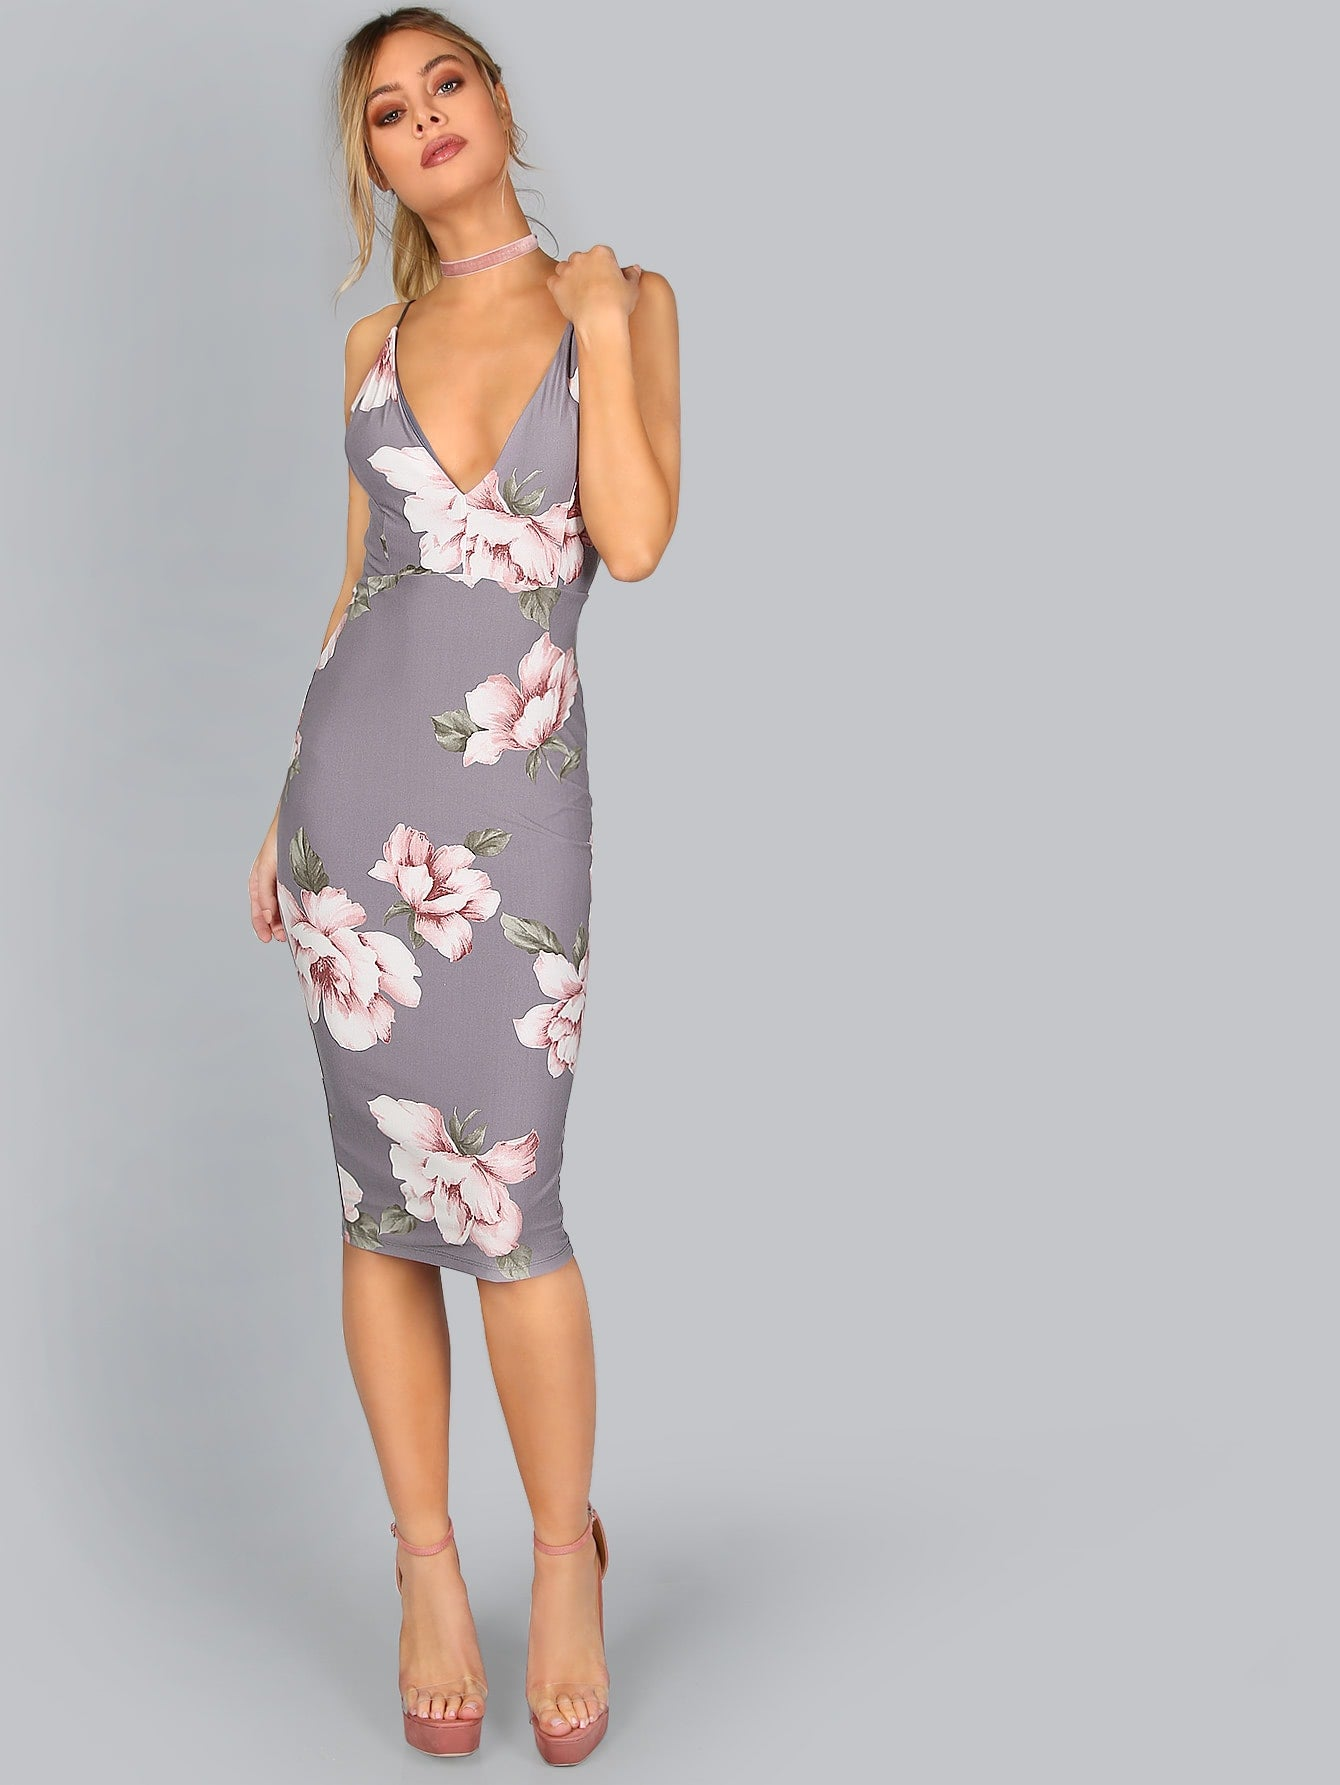 5c1a06b139 Grey Floral Print Plunge Neck Backless Midi Dress